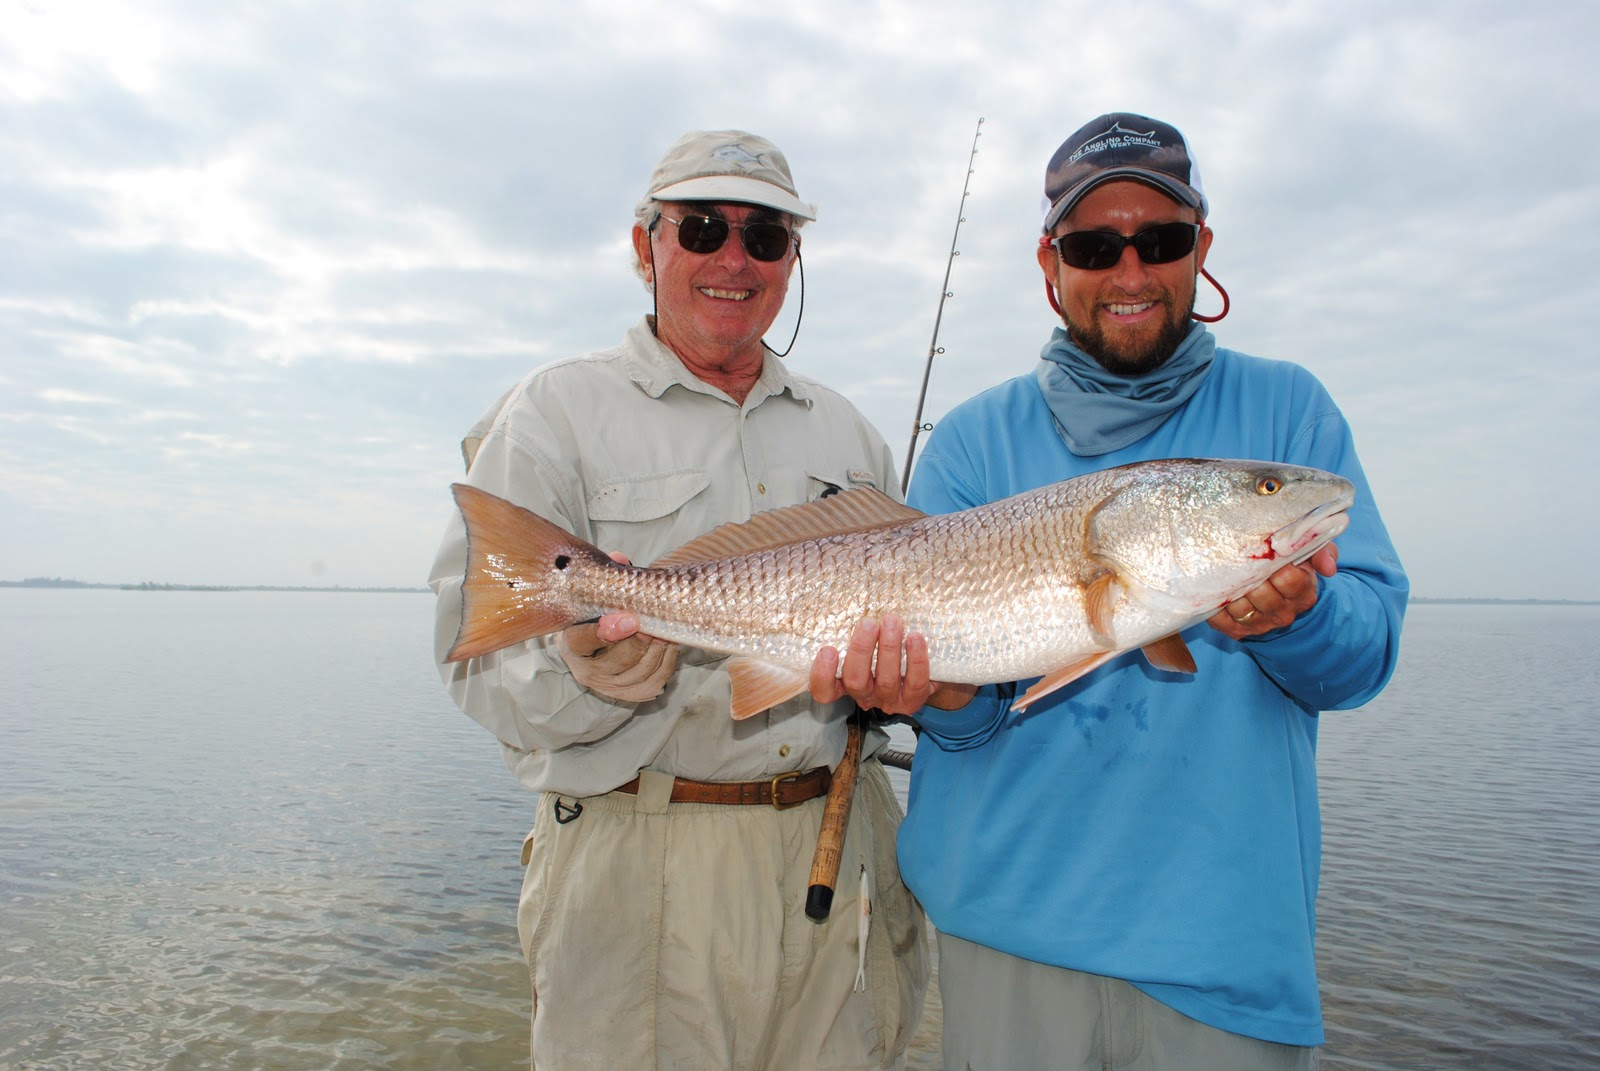 The pine island angler fly fishing for redfish useppa for Fly fishing for redfish